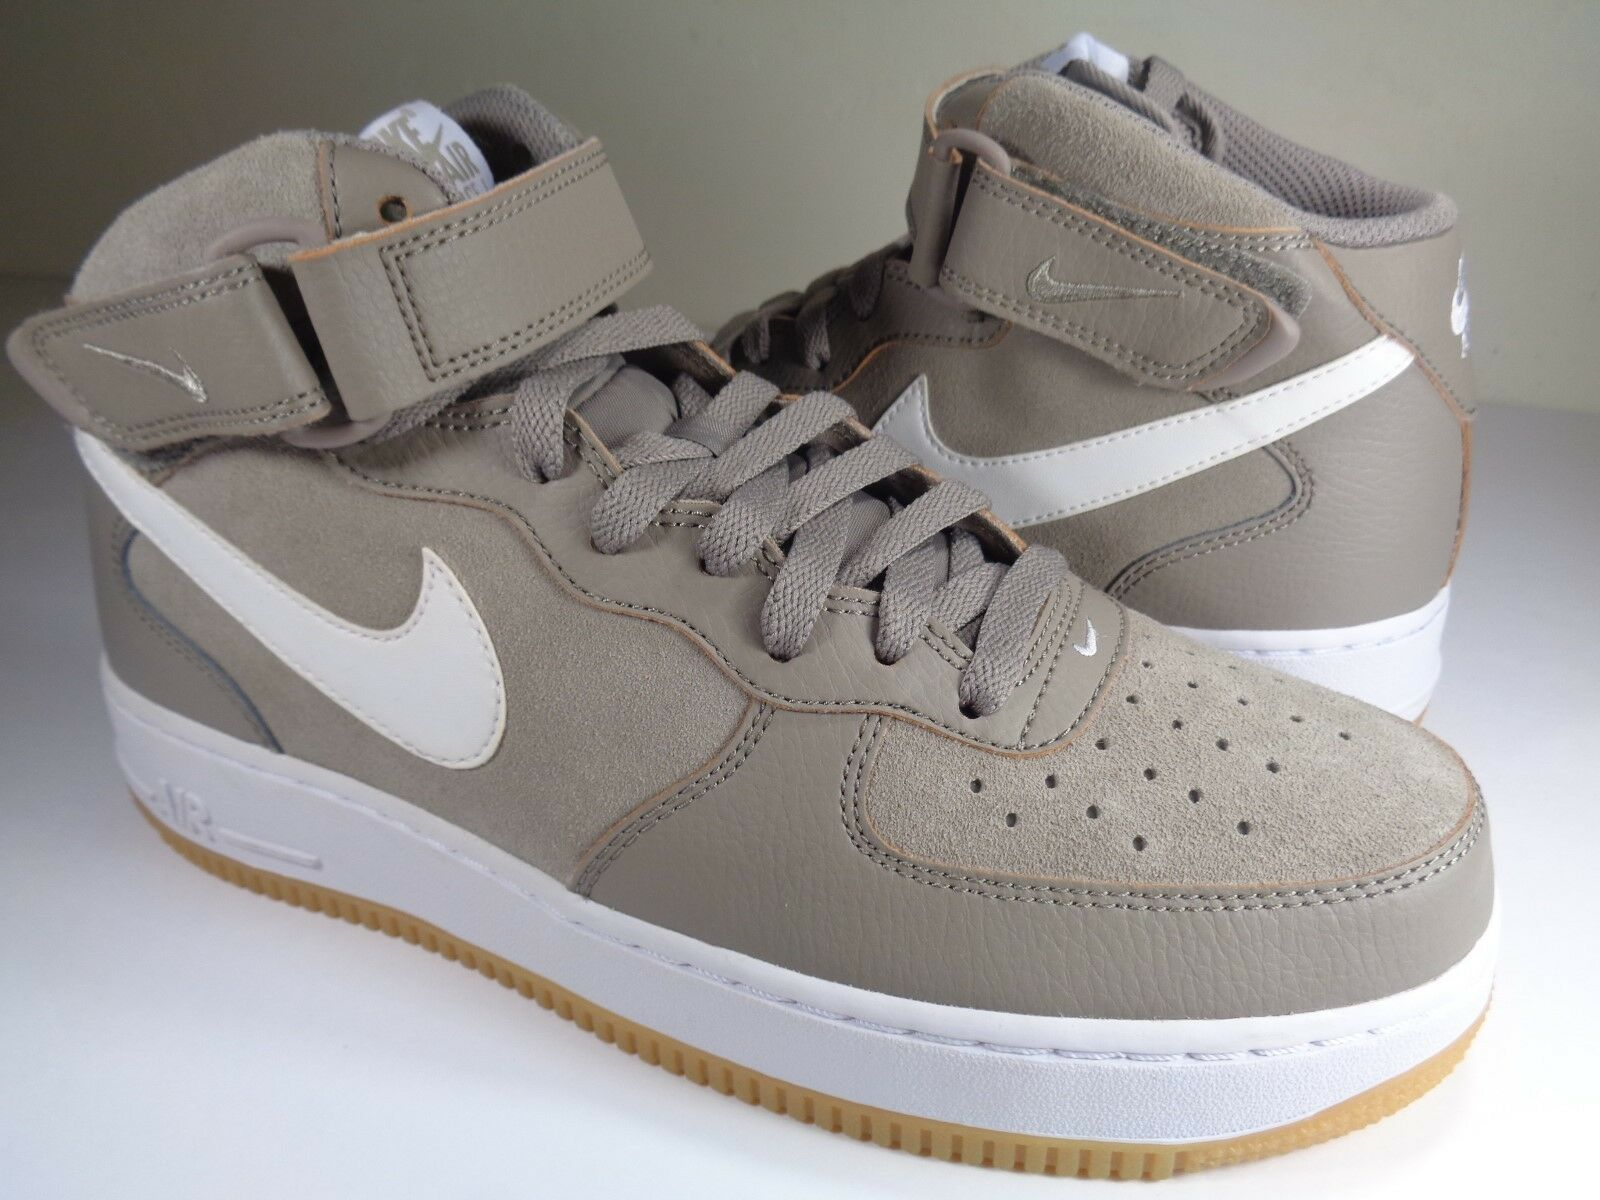 Nike Air Force 1 Mid '07 Light Taupe 9 White Gum Brown SZ 9 Taupe (315123-204) a1e390